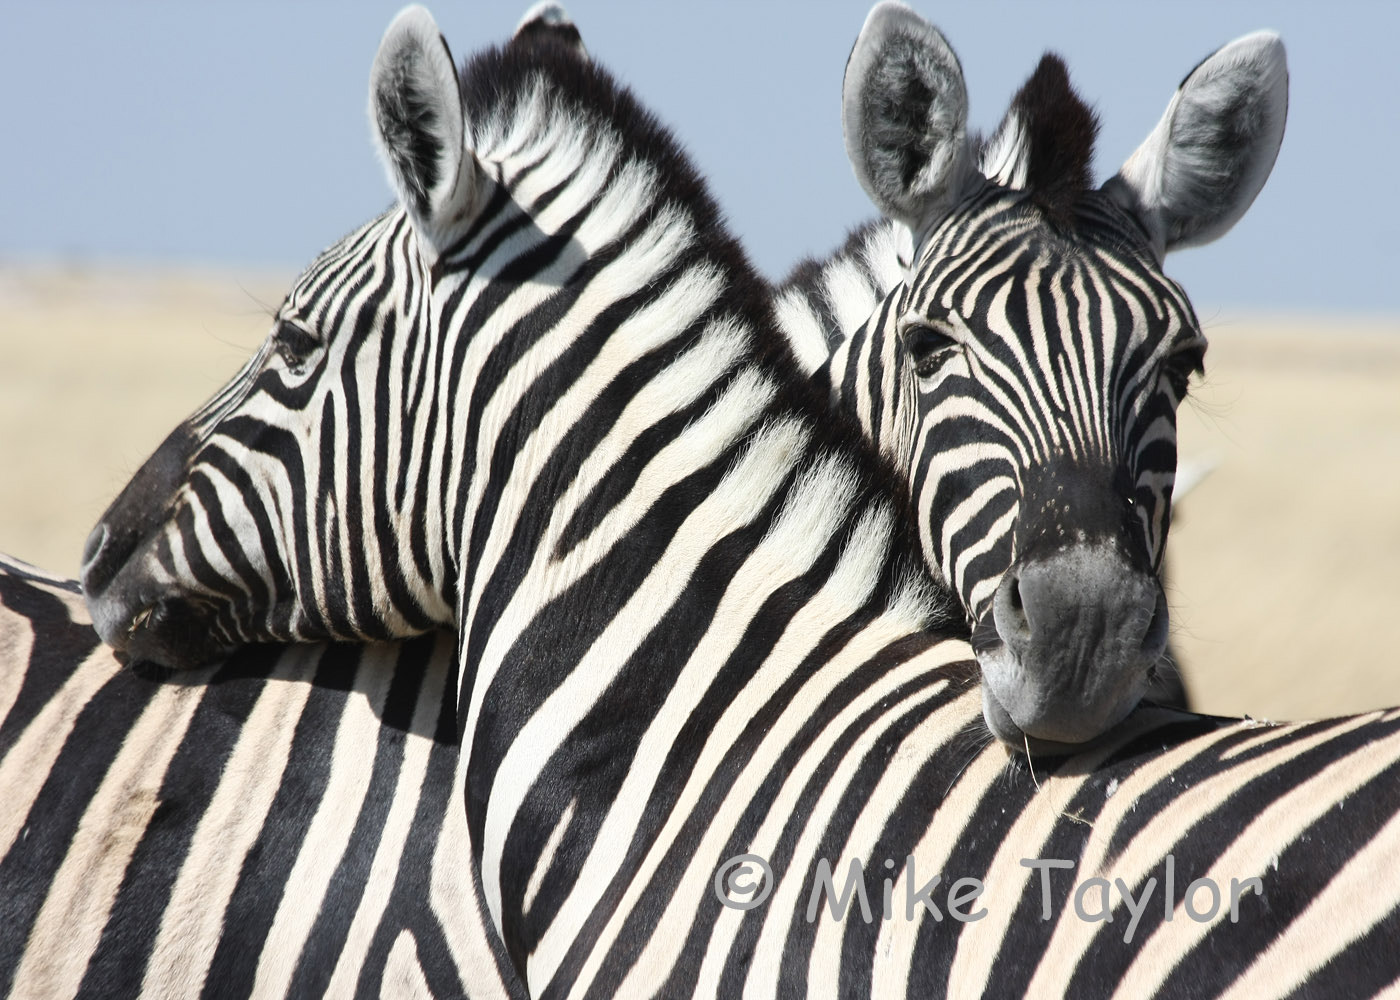 Photograph Zebra by Mike Taylor on 500px